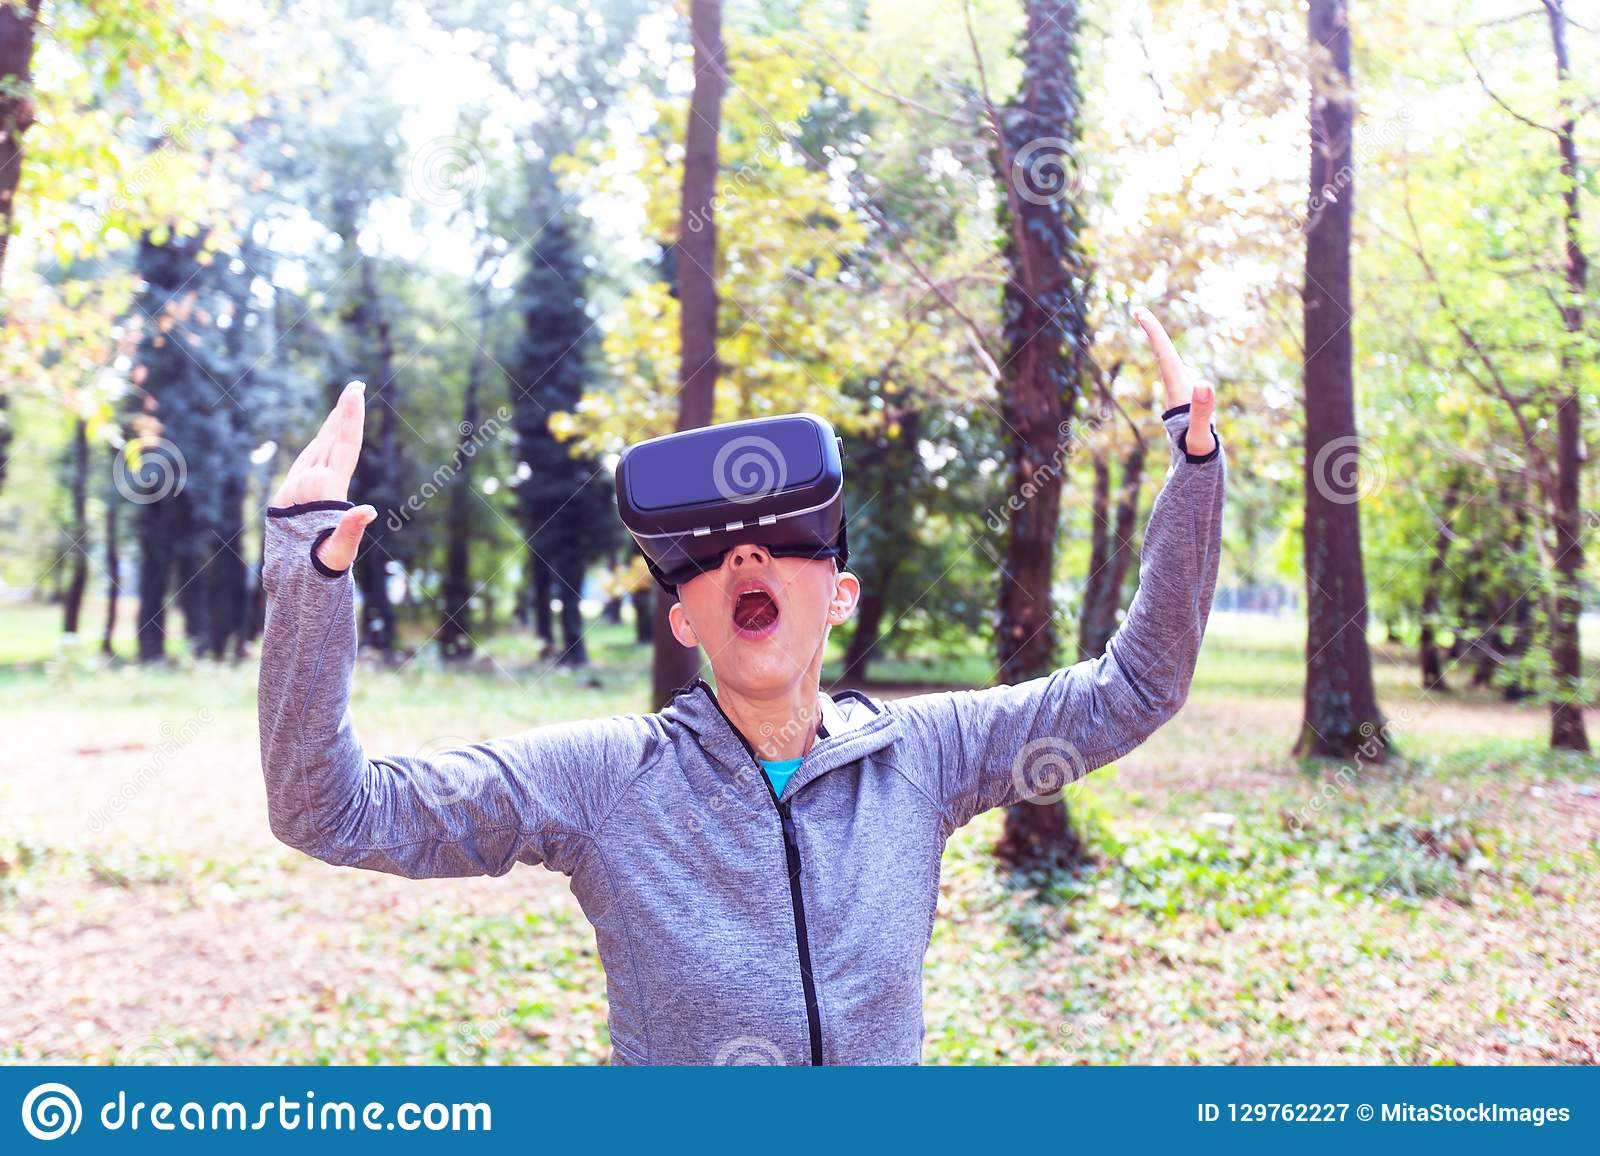 3d822a57c7 Senior Woman Fun With Virtual Reality Headset In Forest Stock Image ...